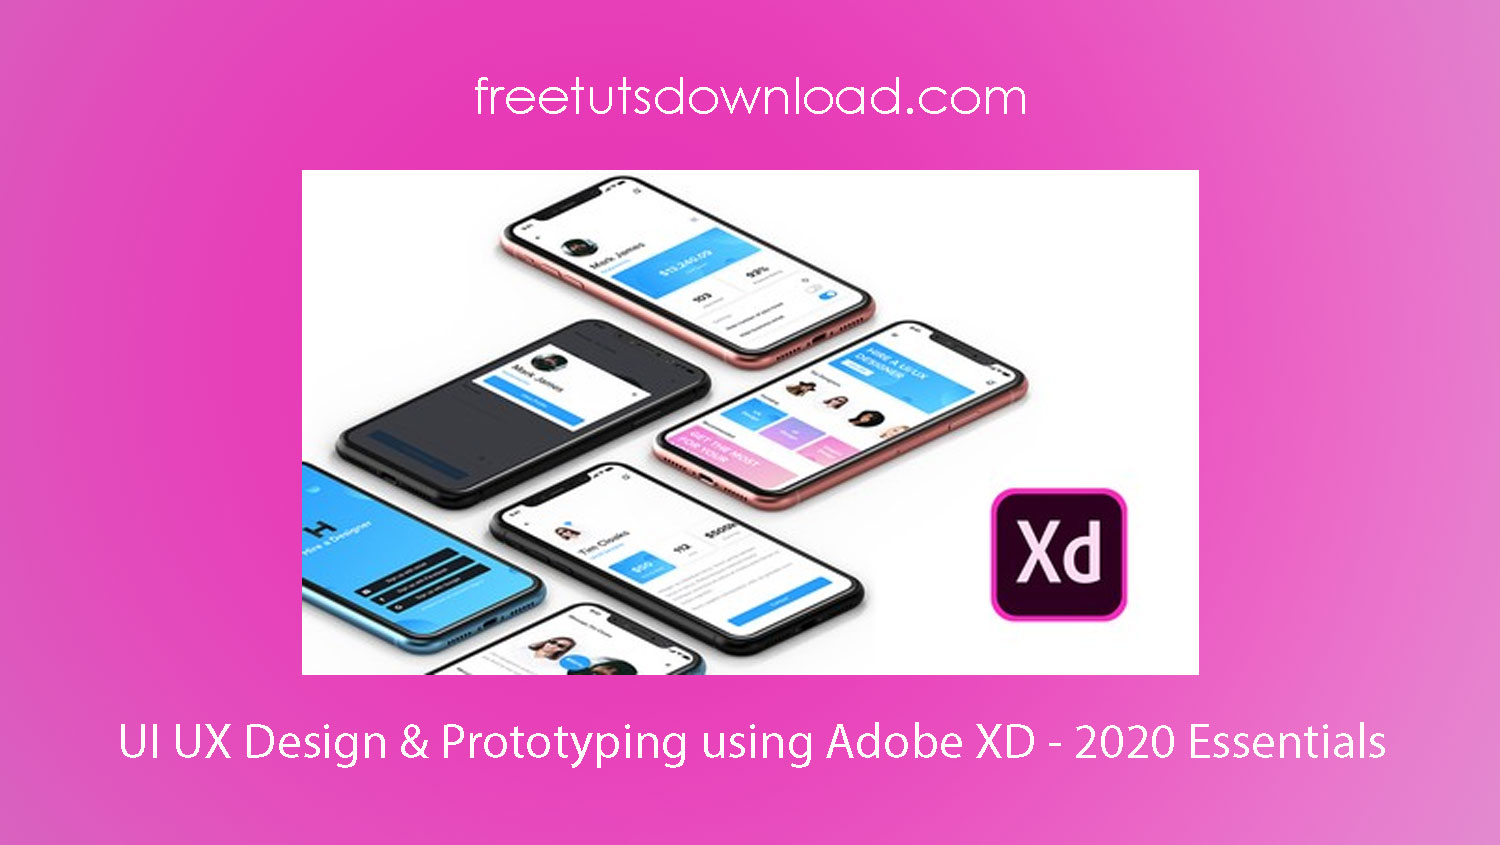 UI UX Design & Prototyping using Adobe XD - 2020 Essentials